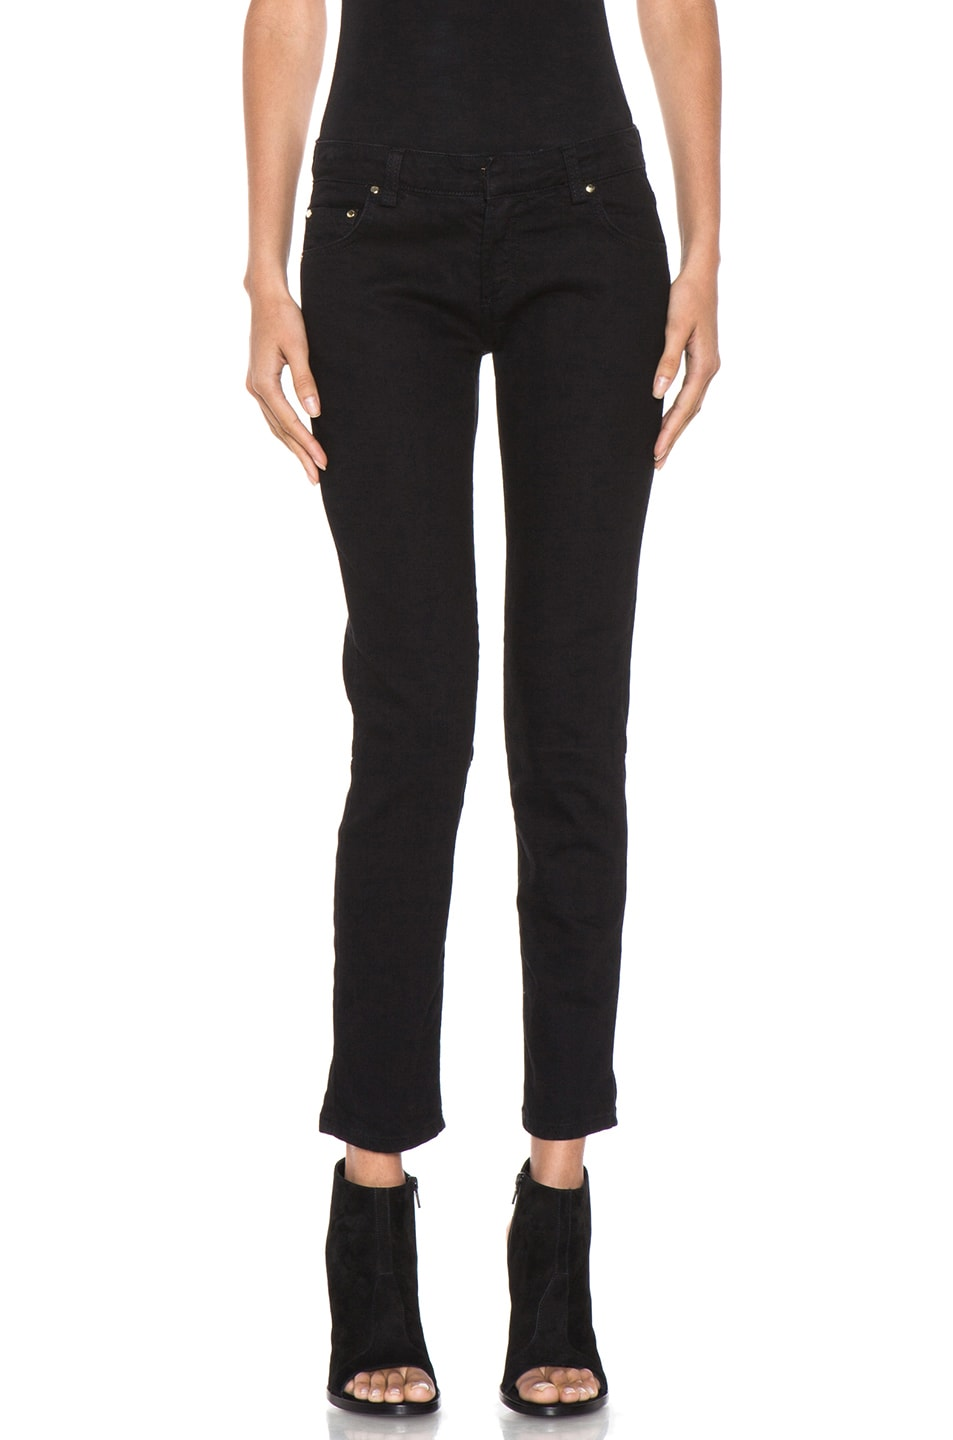 Image 1 of Pierre Balmain Lace Up Detailed Jean in Black